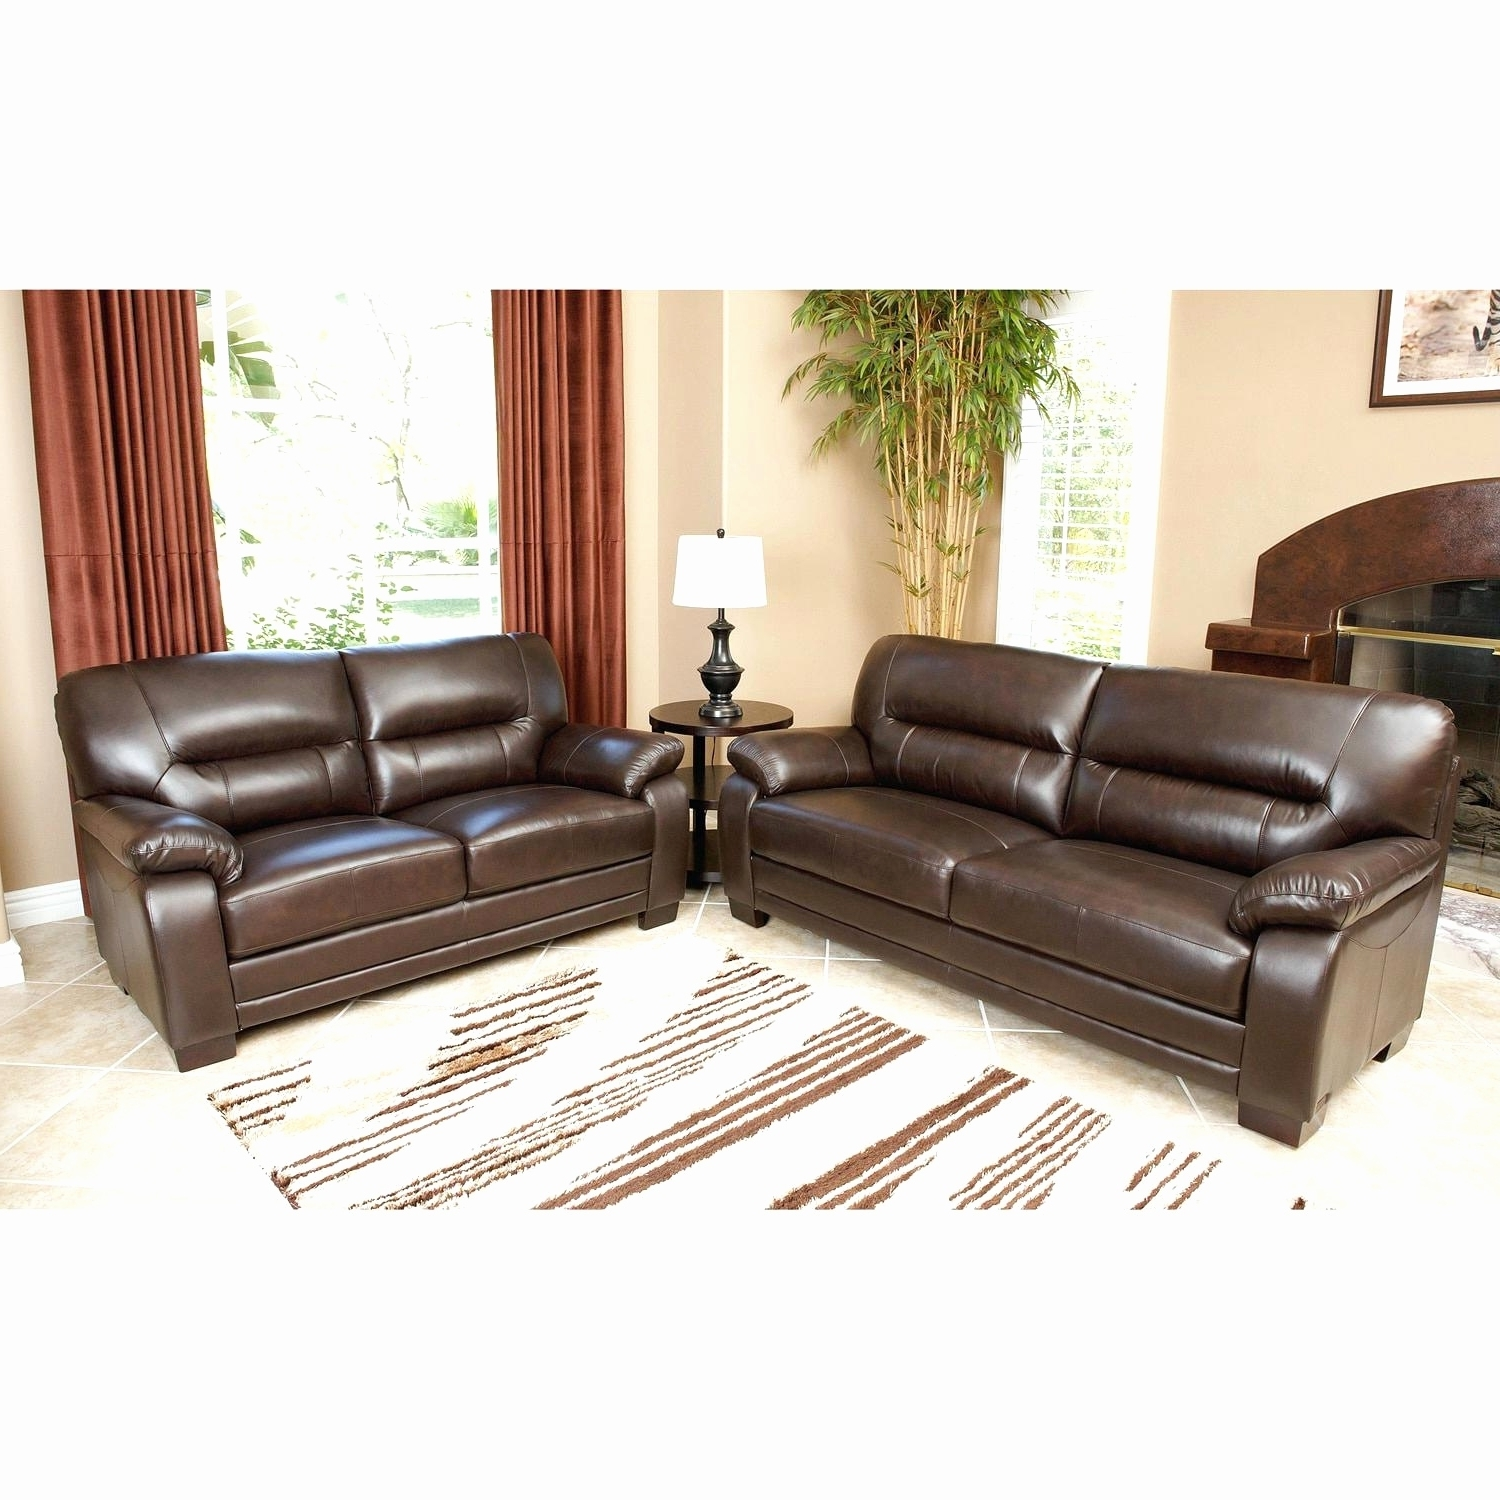 Preferred Sectional Sofas At Barrie With Regard To New Genuine Leather Couches For Sale 2018 – Couches And Sofas Ideas (View 11 of 20)